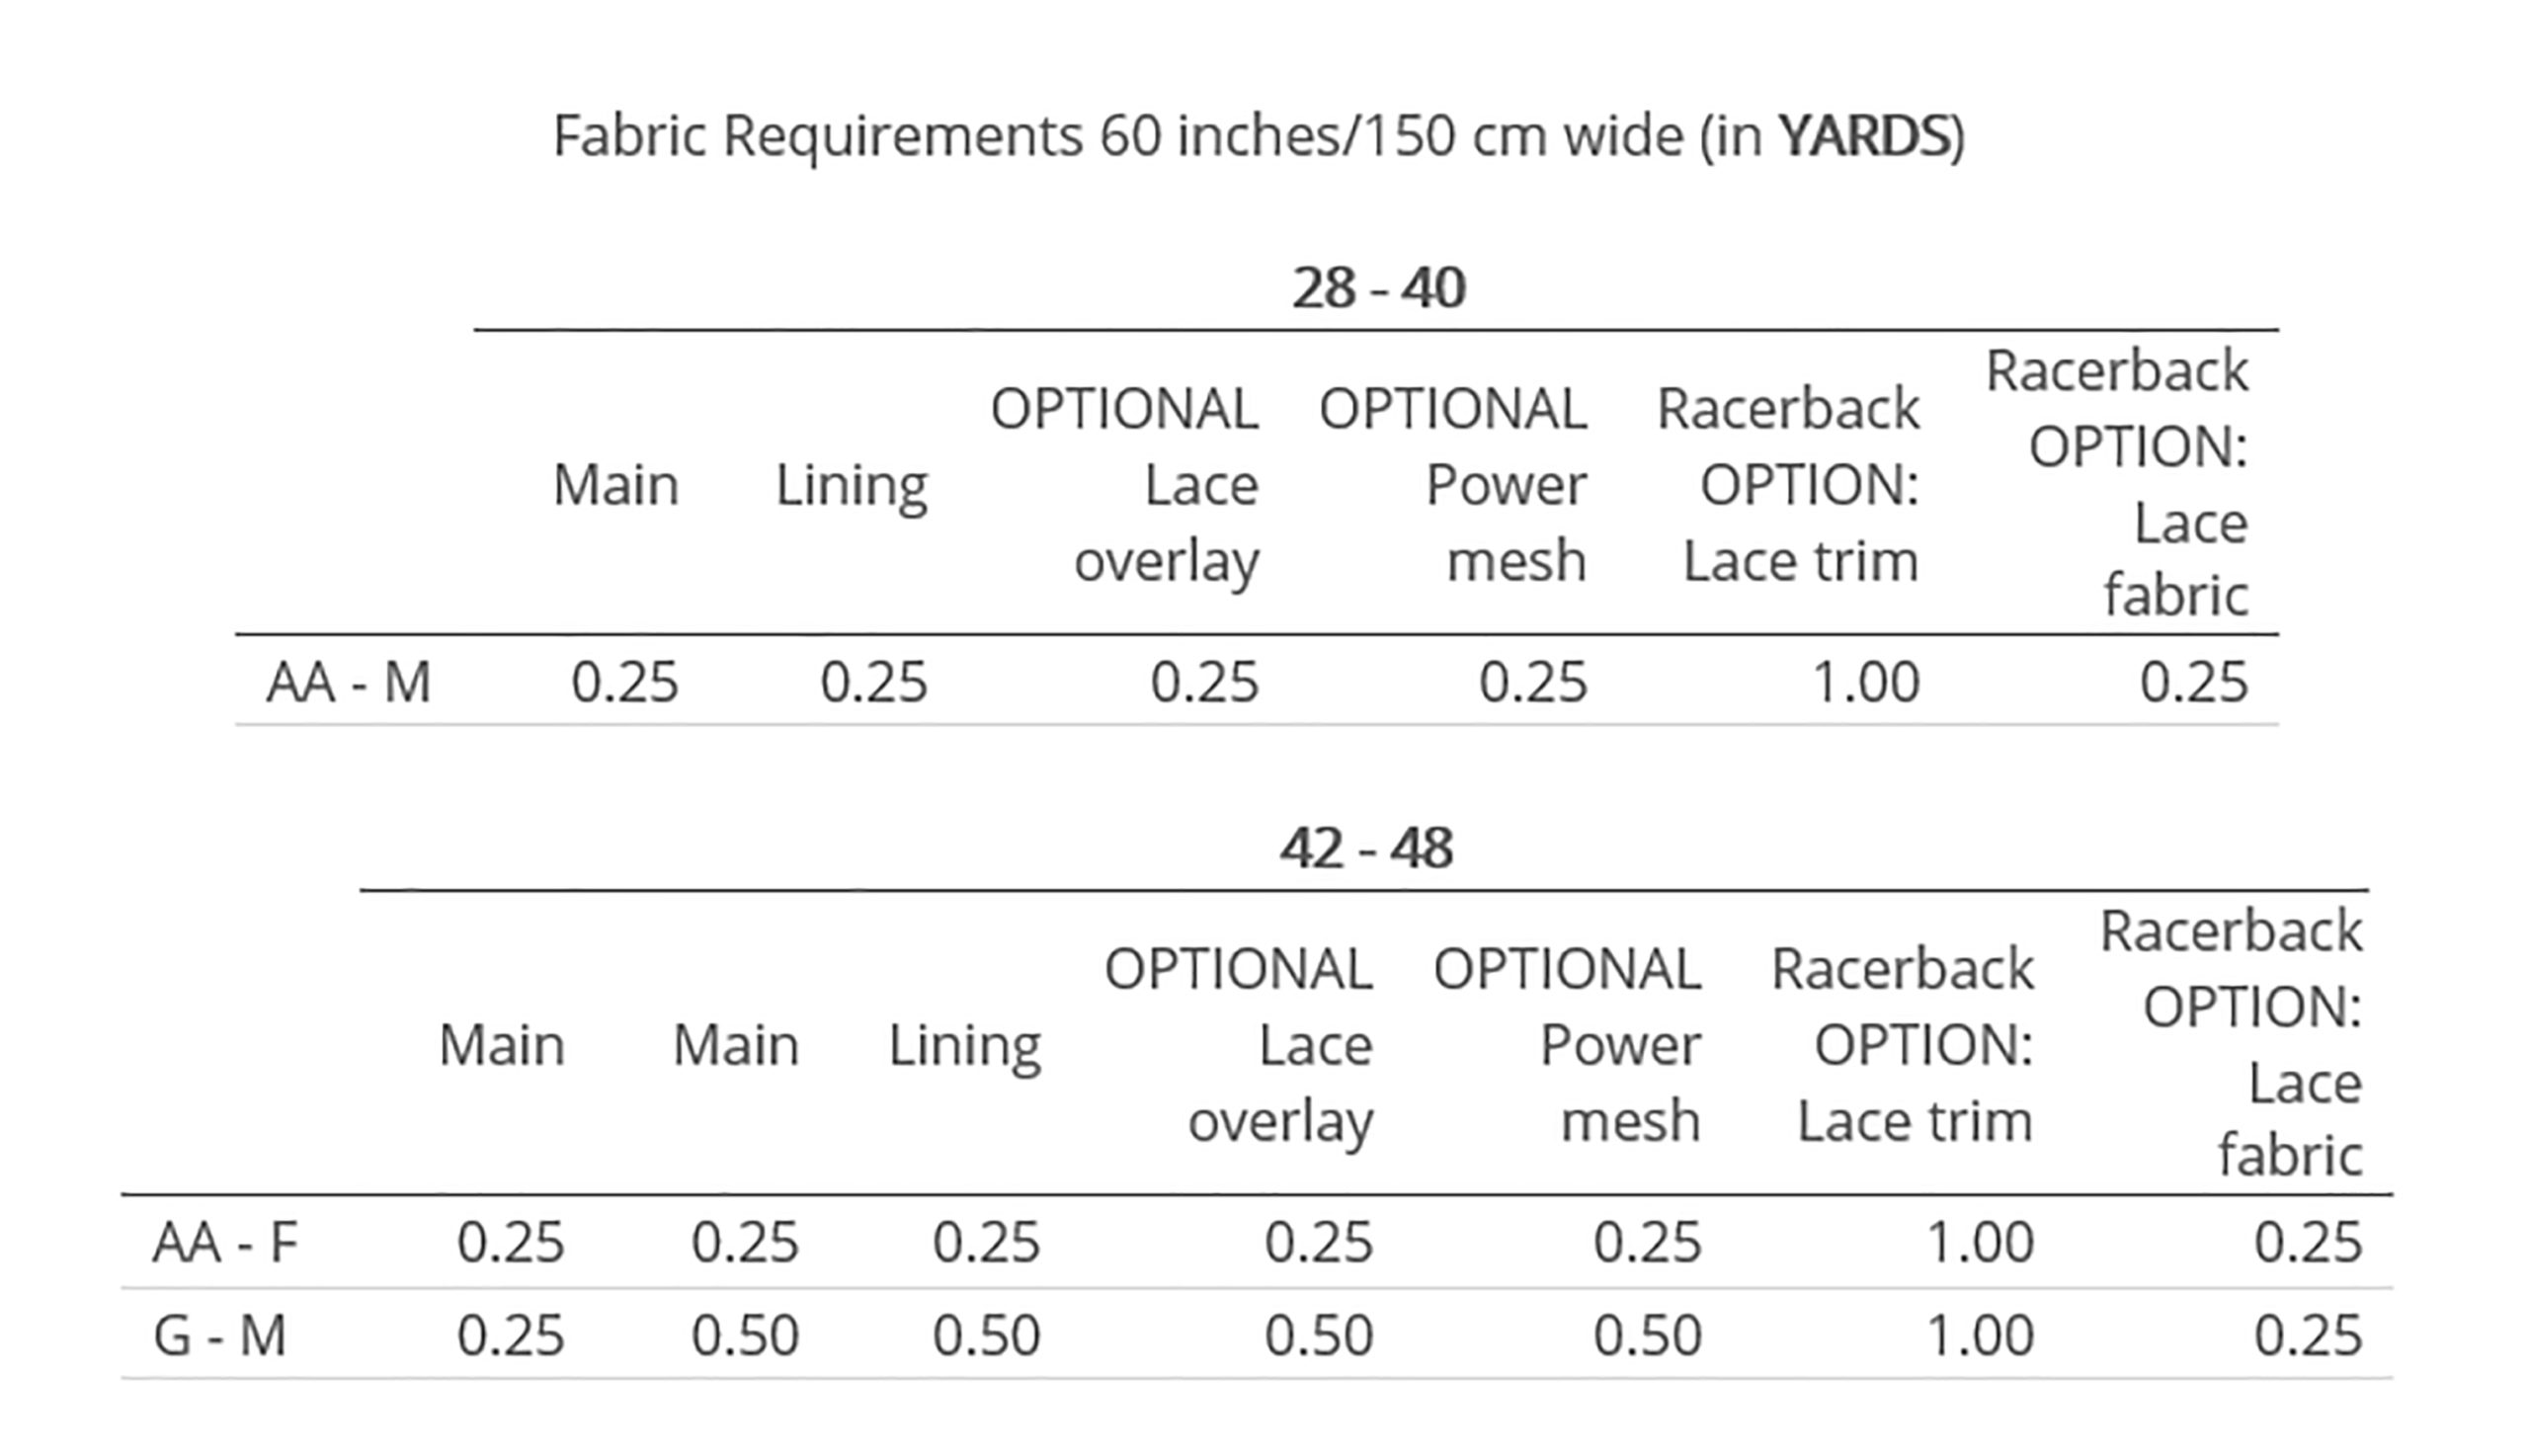 • You will need a stretch/knit fabric for the Racerback Bralette. It can be any weight; however, best results and fit will be achieved with a medium weight fabric. The same fabric can be used for the main and lining. • Your fabric should have a 4-way stretch and at least 30% stretch to achieve the intended fit. To check how much stretch your fabric has, take a piece of fabric, and pull along its stretch. If it allows you to stretch it at least 30% longer than its original length, then it has at least 30% stretch. I.e., A 2-inch piece of fabric (unstretched) should be able to be stretched to 2.6 inches. • The stretch recovery of your fabric is just as important as the stretch percentage. This ensures your bralette maintains its shape and fit for as long as possible and not become baggy. To test the stretch recovery (elasticity), simply check that when you stretch your piece of fabric it returns to its original size. • You can use light to medium weight stretch fabrics such as jersey, silk satin with elastine, silk jersey with elastine, Liverpool, double brushed polyester, modal etc. • OPTIONAL Lace Overlay - You can add an overlay to the outer of the Bra. You will need a 4-way stretch fabric with good recovery e.g. lace, mesh. • OPTIONAL Power Mesh – For additional support you can add a 4-way stretch power mesh to your Front and Back Lining. • Racerback OPTION – You can use a stretch lace with scalloped edge or galloon lace with a minimum width of 3 inches. You can buy this by the yard or as a trim. If you are buying it by the yard you will need to use the scalloped edge.